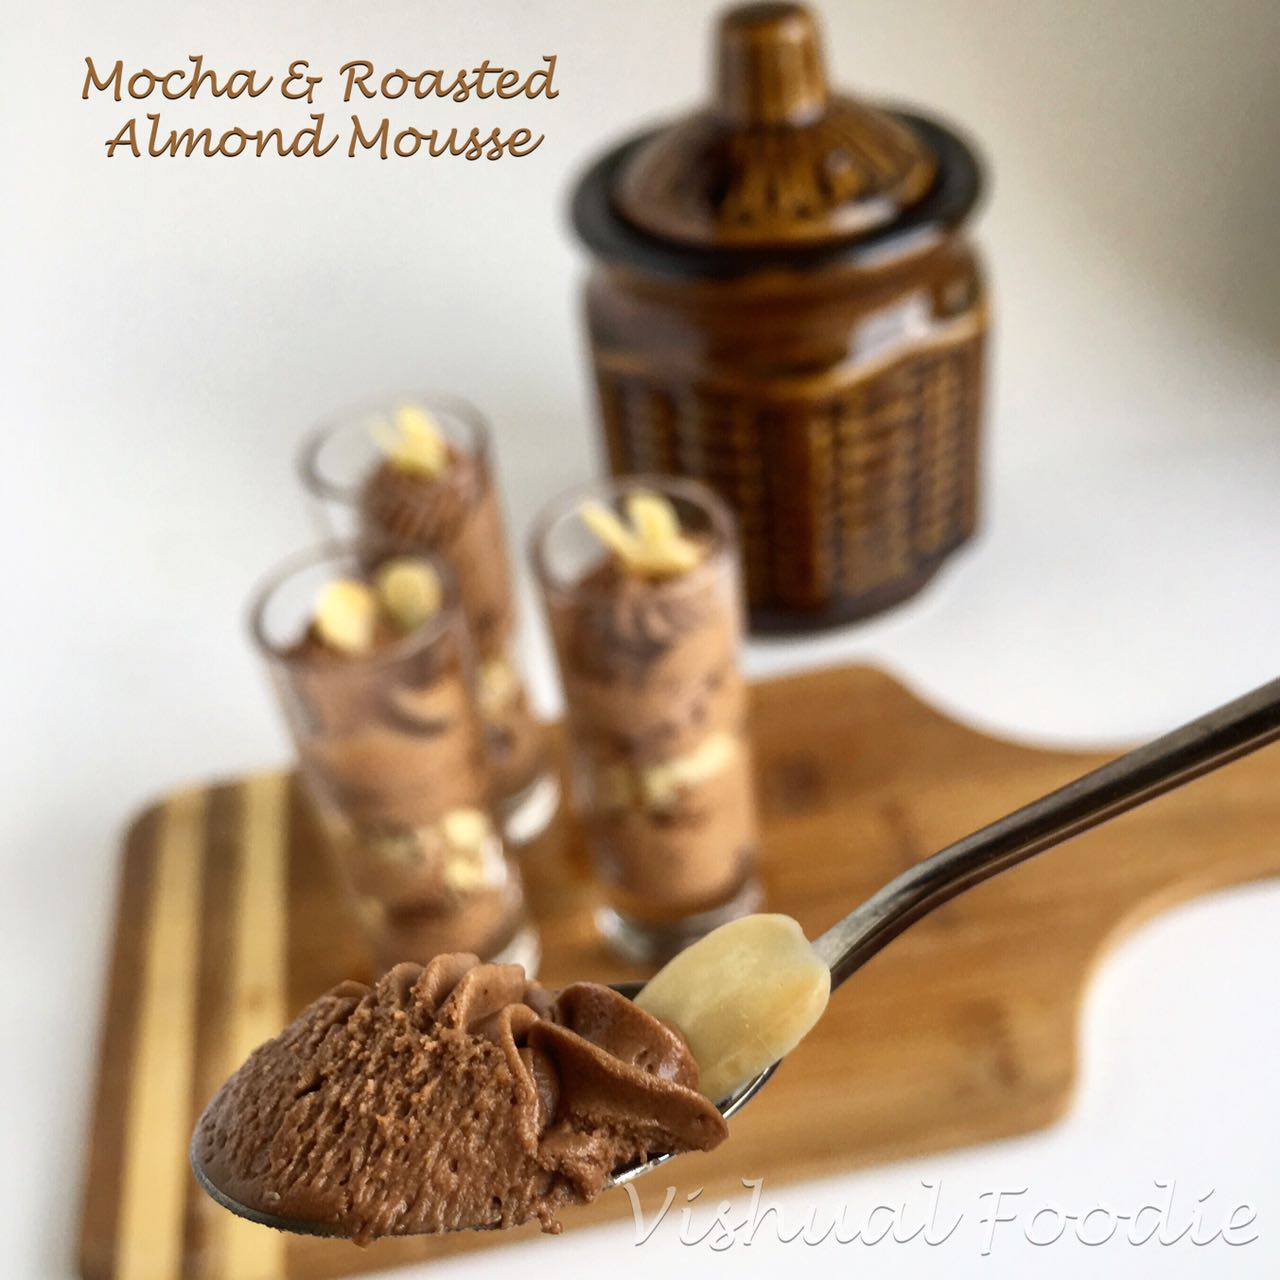 Mocha Mousse With Roasted Almonds